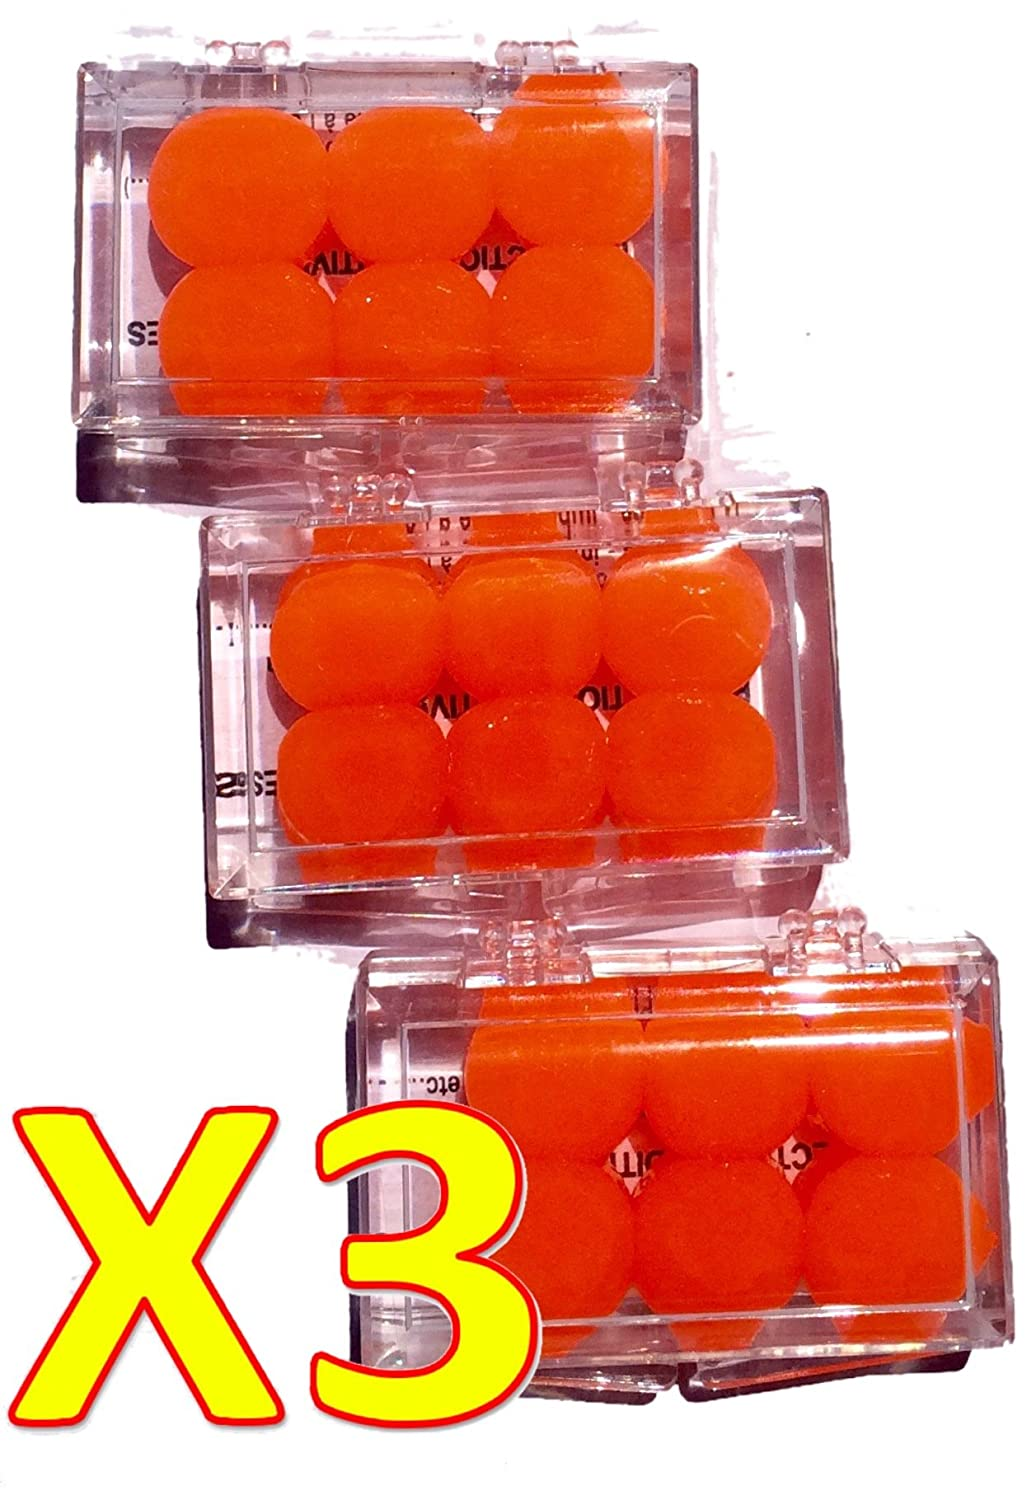 BODYGUARD EAR Protection Auditive Silicone 6 Bouchons d'oreille en silicone ORANGE - Lot de 3 boites de 6 Bouchons O… 271164